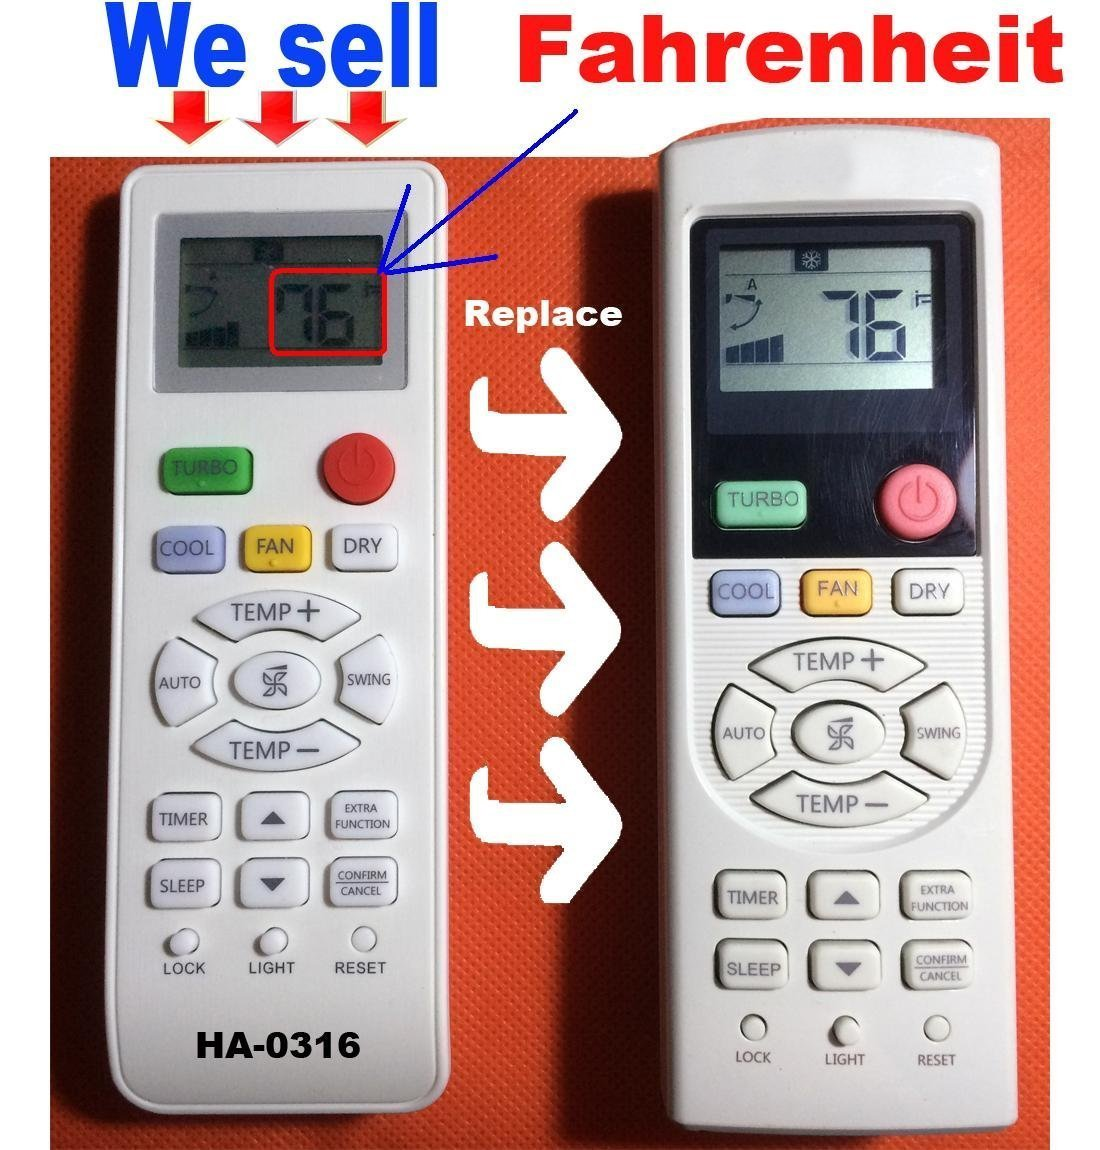 HA-0316 Replacement for Haier Air Conditioner Remote Control Model Number Yl-hd01 Yl-hd02 Yl-hd03 Yl-hd04 Yl-hd05 Yl-hd06 yr-hd01 yr-hd02 yr-hd03 yr-hd04 yr-hd05 yr-hd06 yr-hd** Yl-hd**